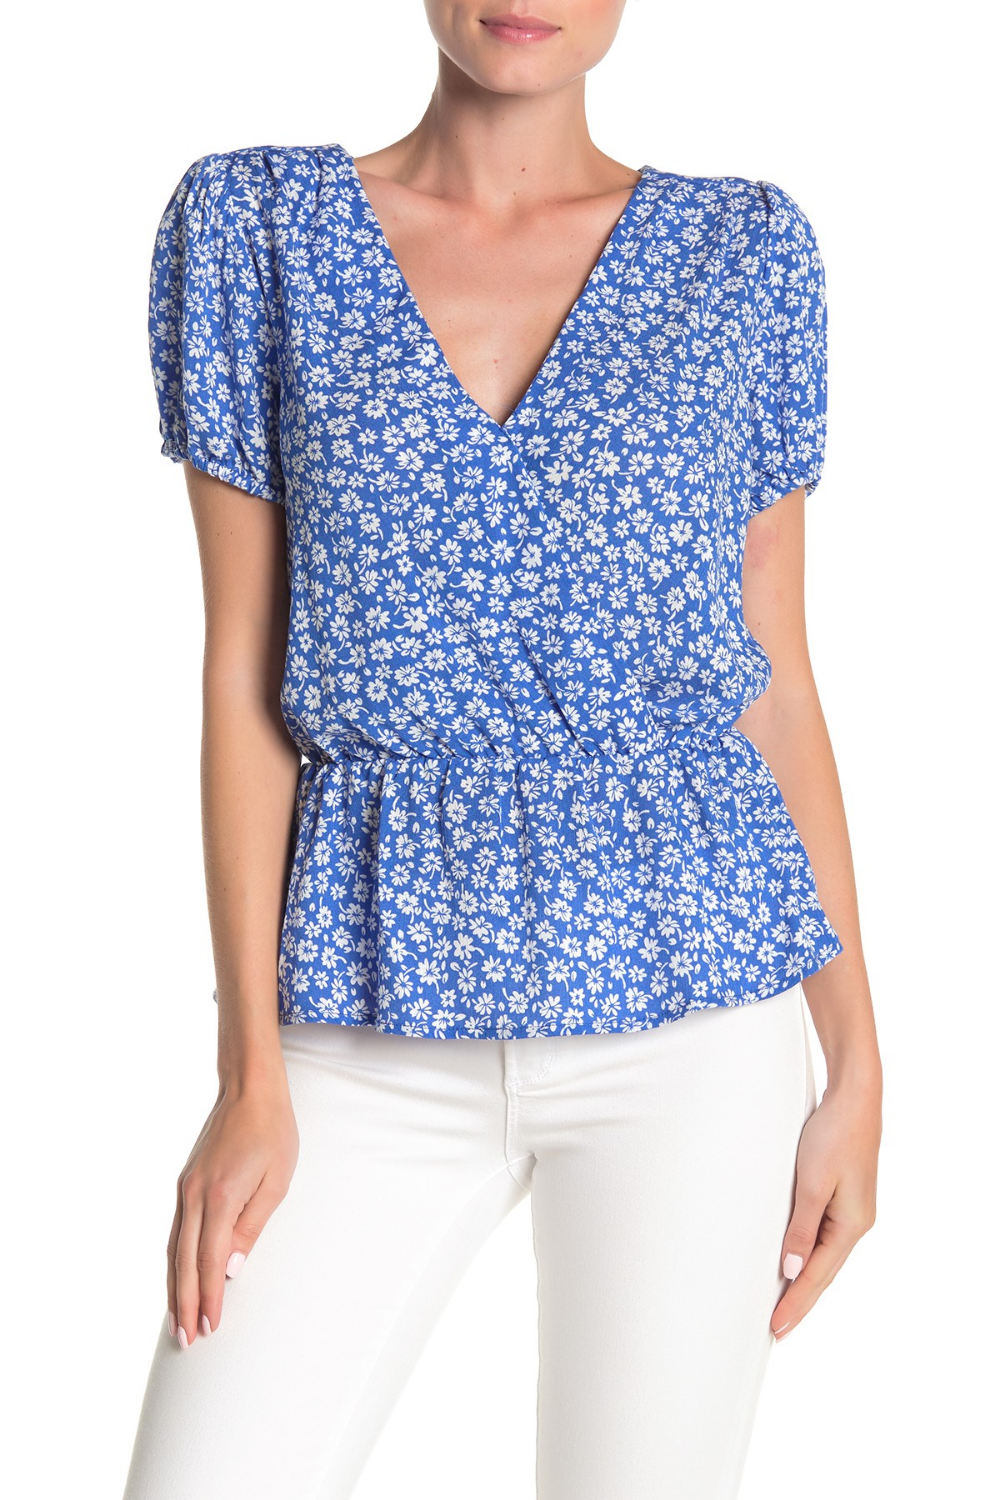 GOOD LUCK GEM | Floral Cinch Waist Blouse #nordstromrack